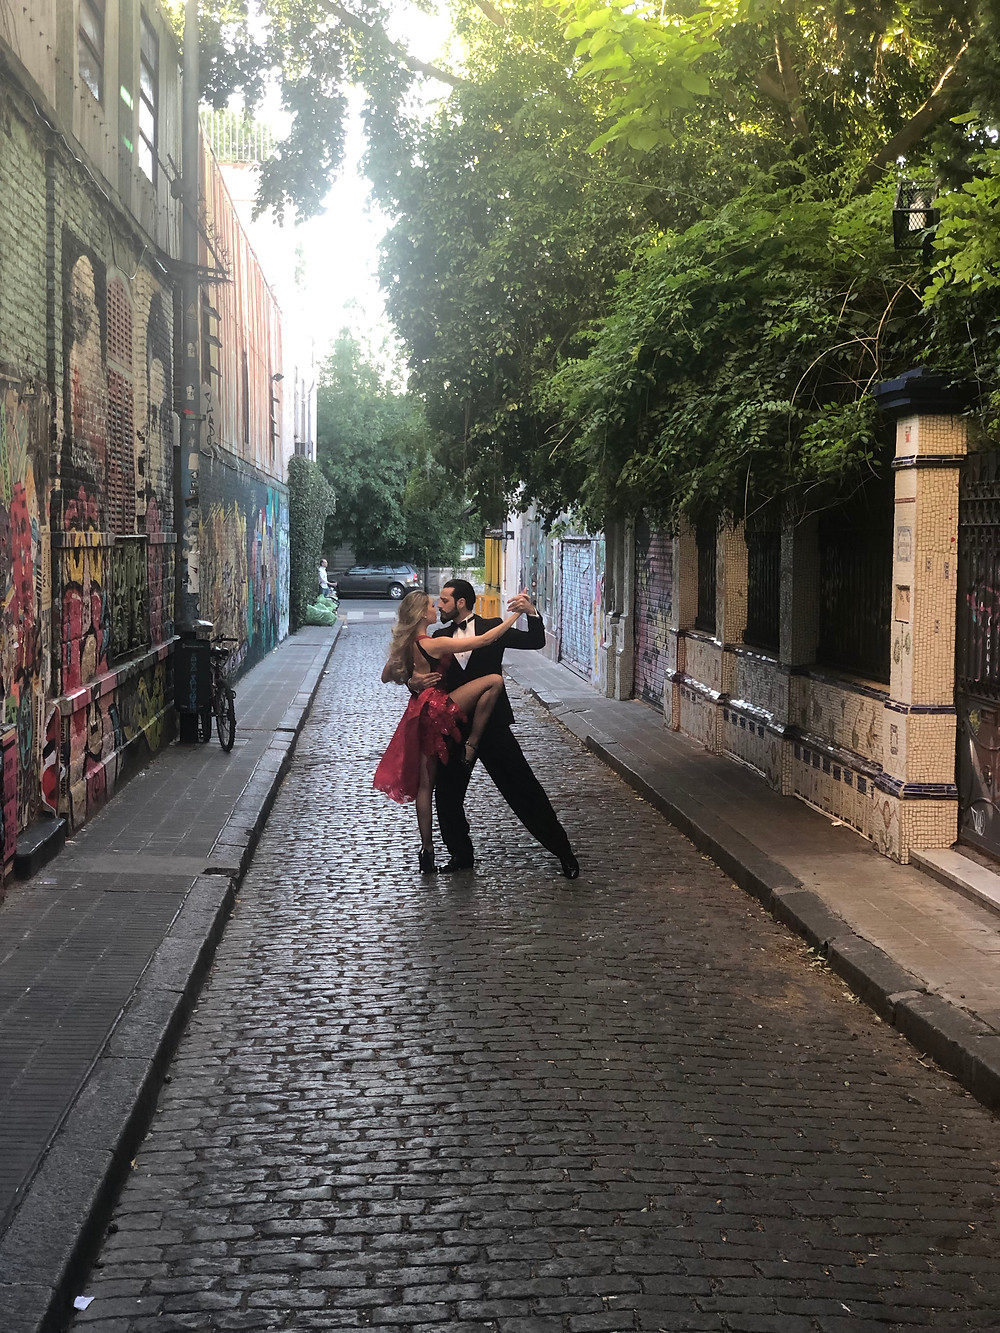 Man and woman dancing in a narrow city street